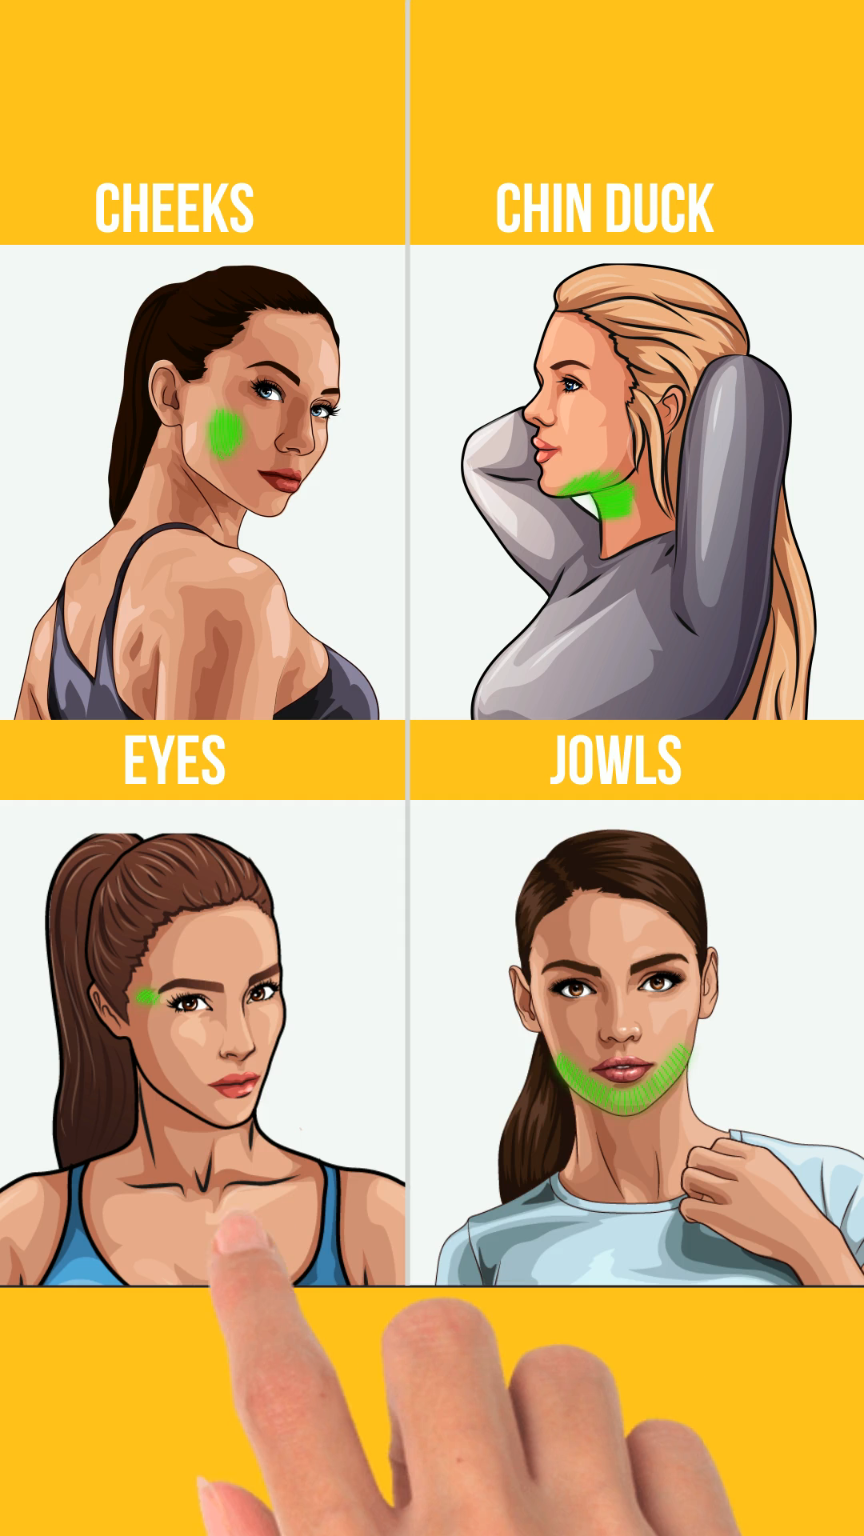 5 Easy Ways of How to Lose Weight from Face » Trik Cara Tips is part of Workout - Lose weight from face in just one month only, Get your ideal face weight by practicing tips easy ways routinely, the natural way & lost weight in face quick